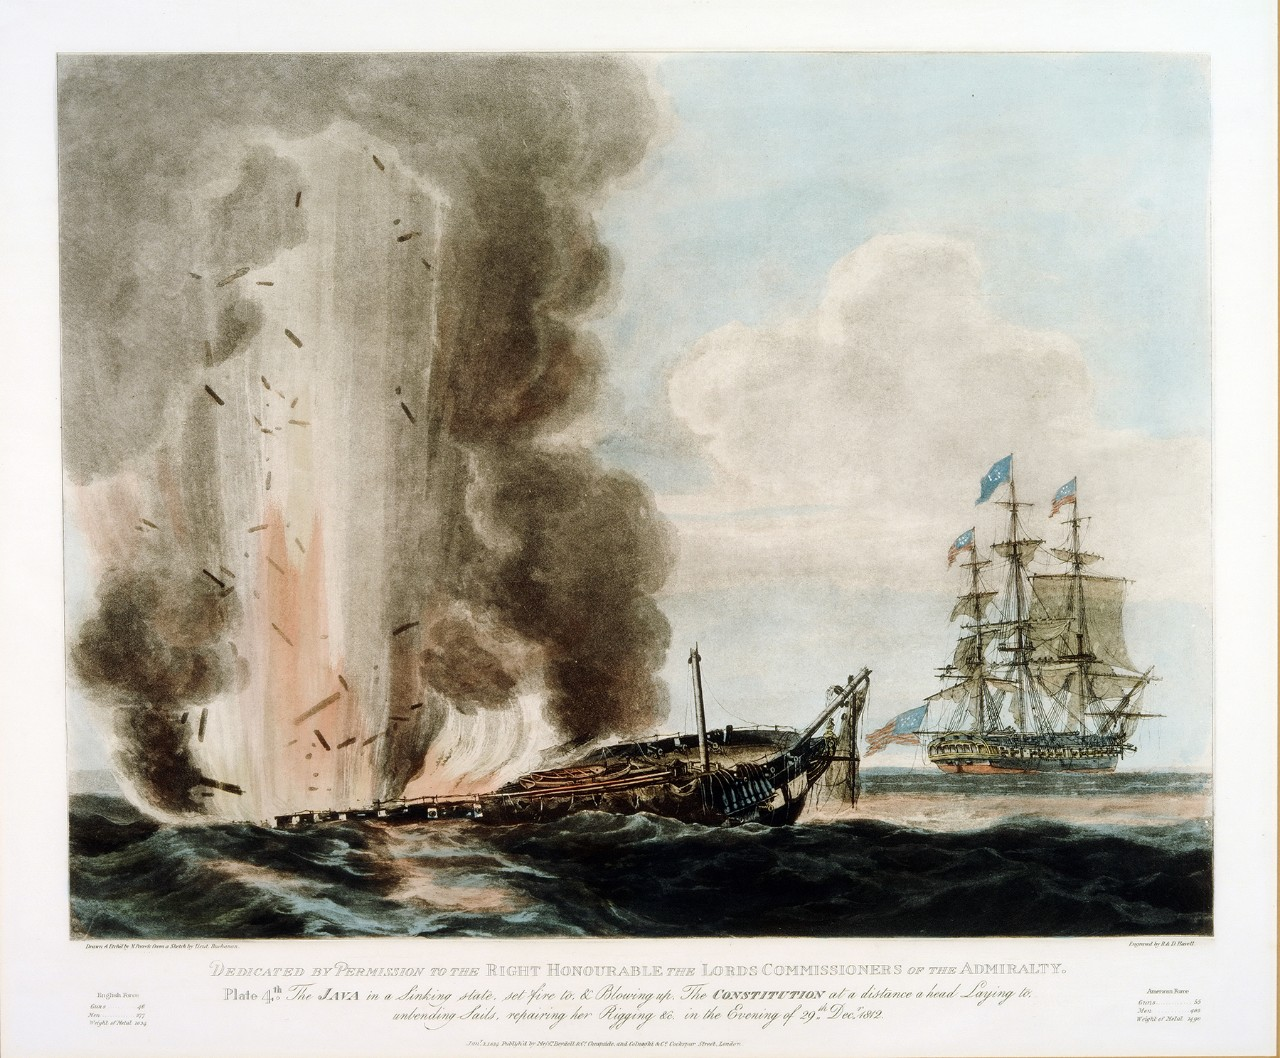 To the left, the British ship is exploding as it sinks, the American ship is in the background